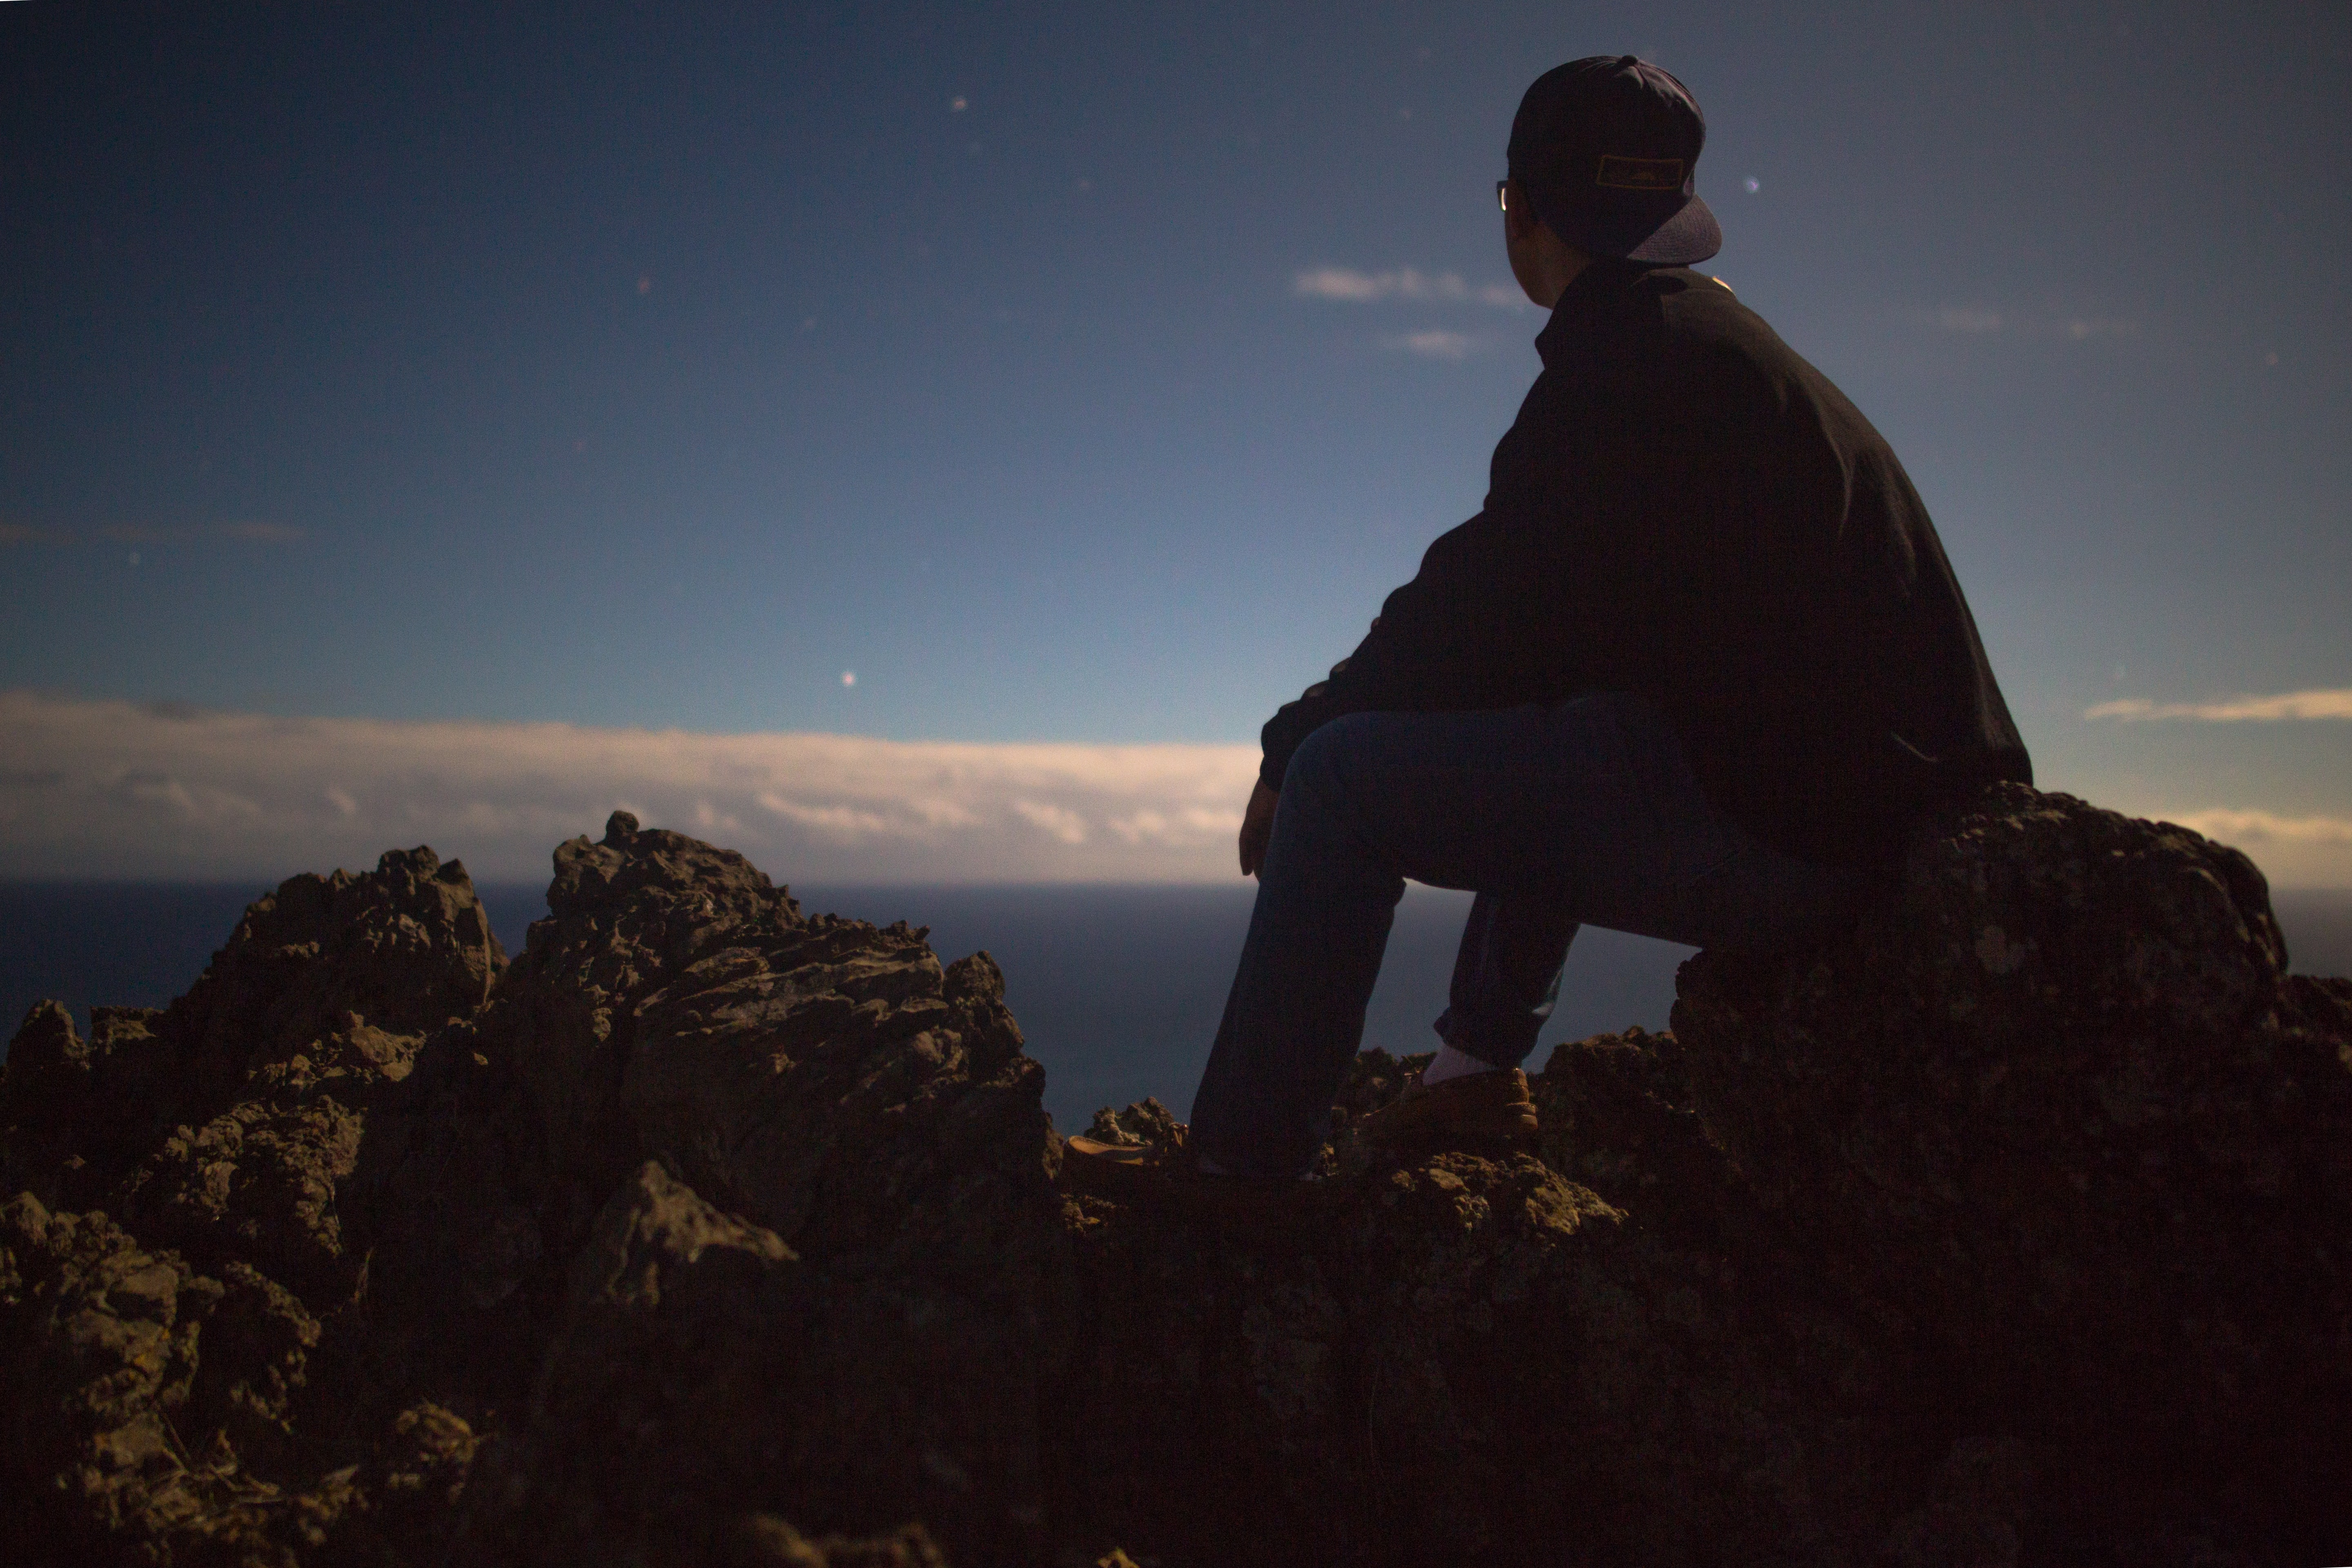 A man with glasses sitting on the rocks looking at the sea in the distance.